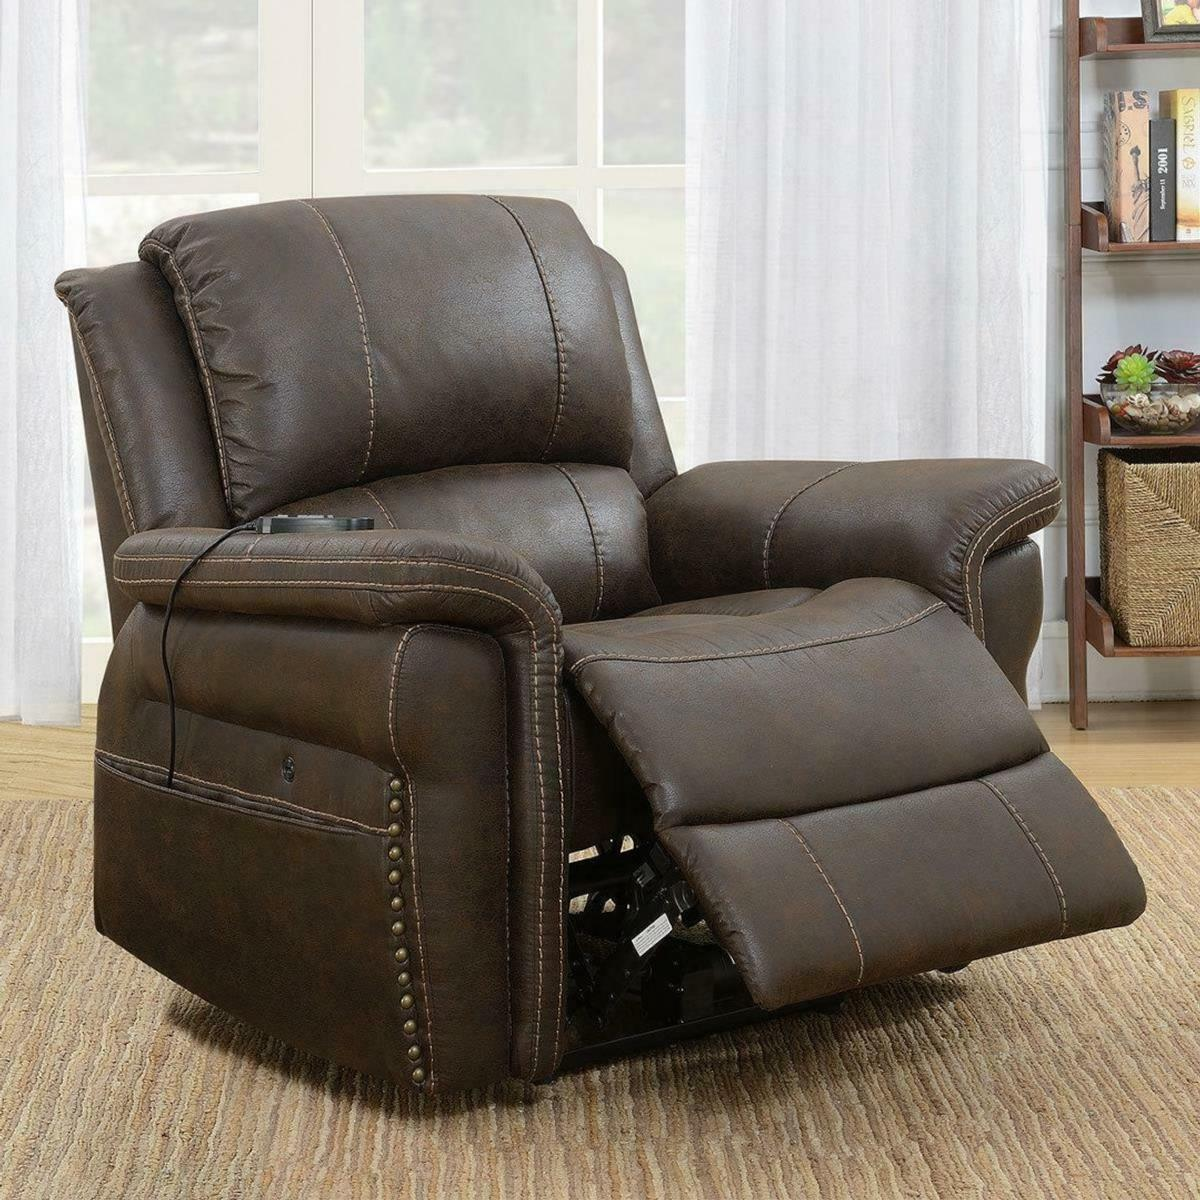 Recliner Chair With Built In Heat Massage